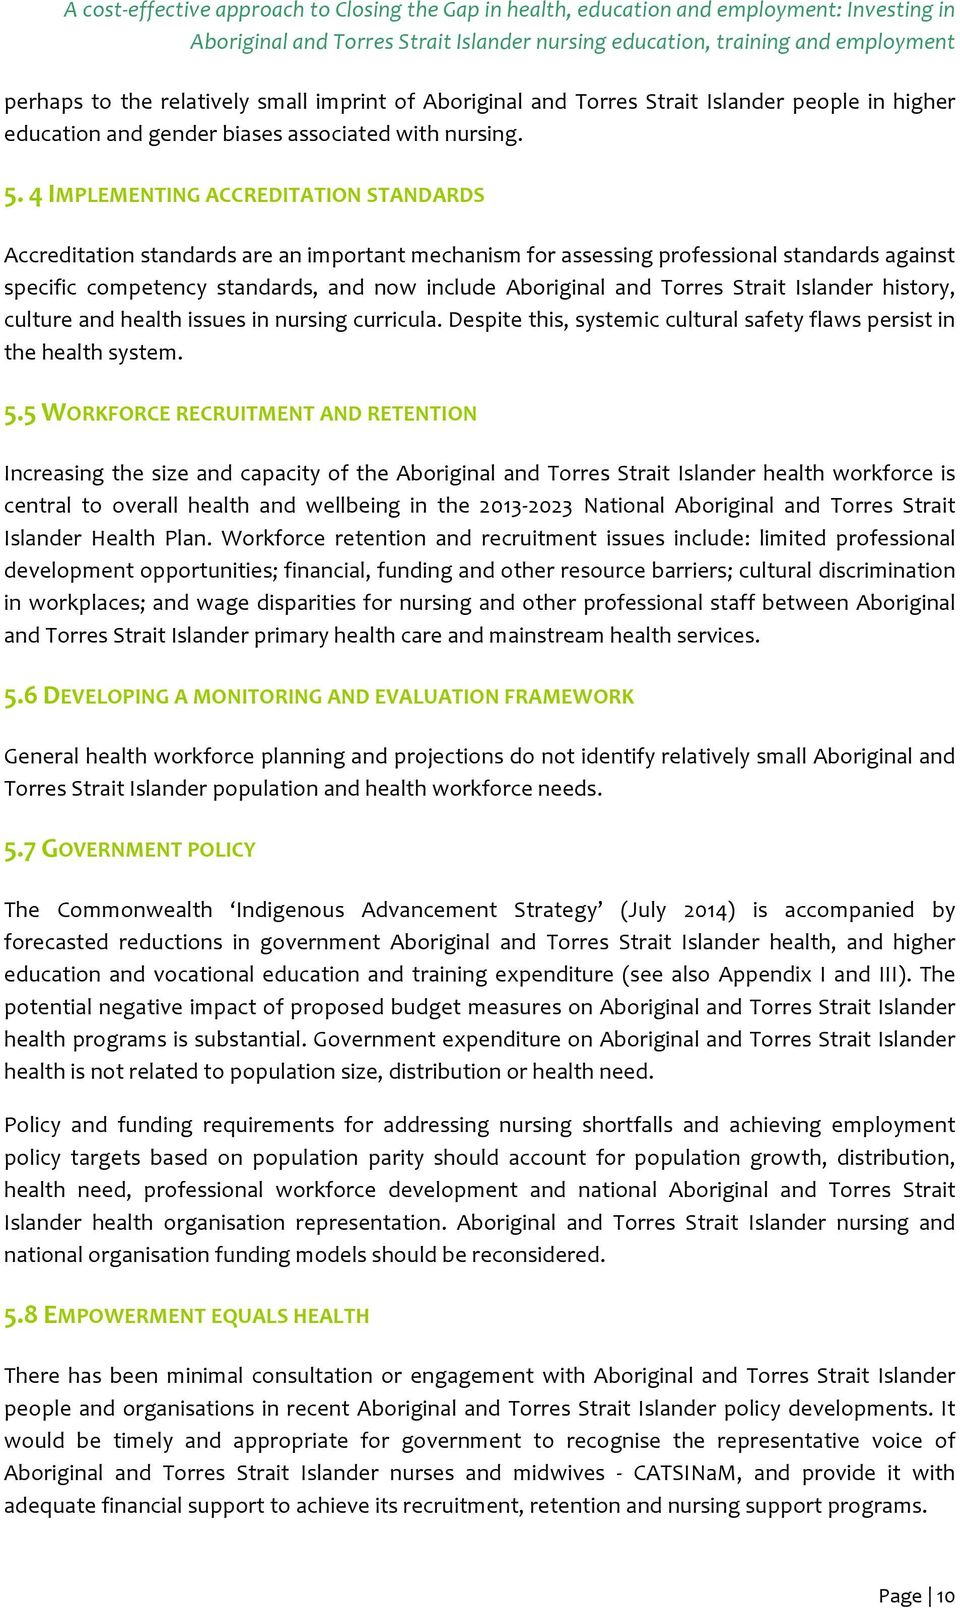 Torres Strait Islander history, culture and health issues in nursing curricula. Despite this, systemic cultural safety flaws persist in the health system. 5.